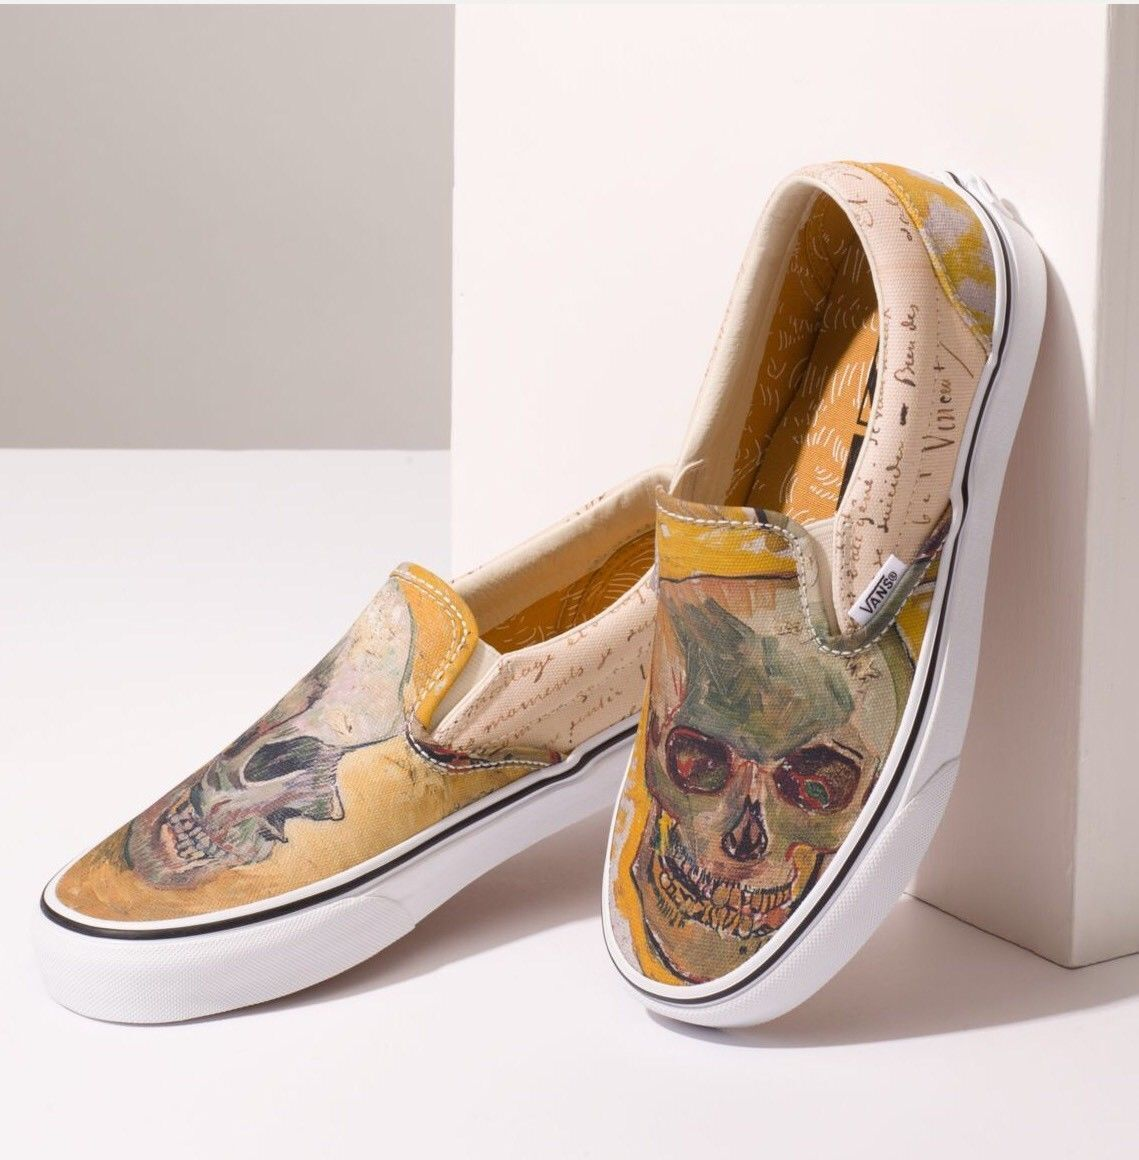 NIB Vans Limited VAN GOGH Skull True White Slip On - LAST SIZES - NEW IN BOX